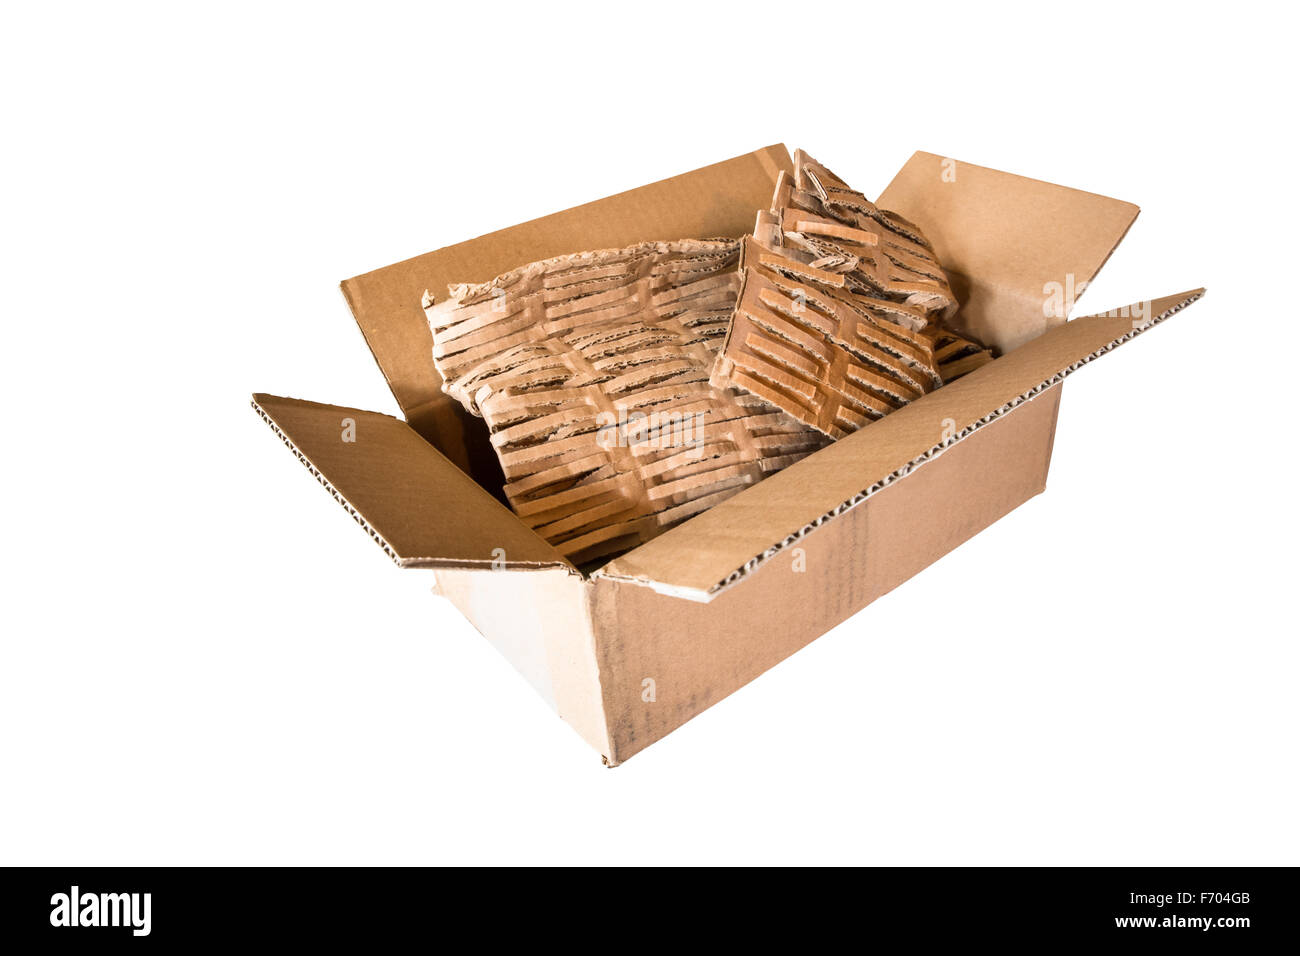 Open empty cardboard shipping box with eco-friendly packing material on isolated white background - Stock Image